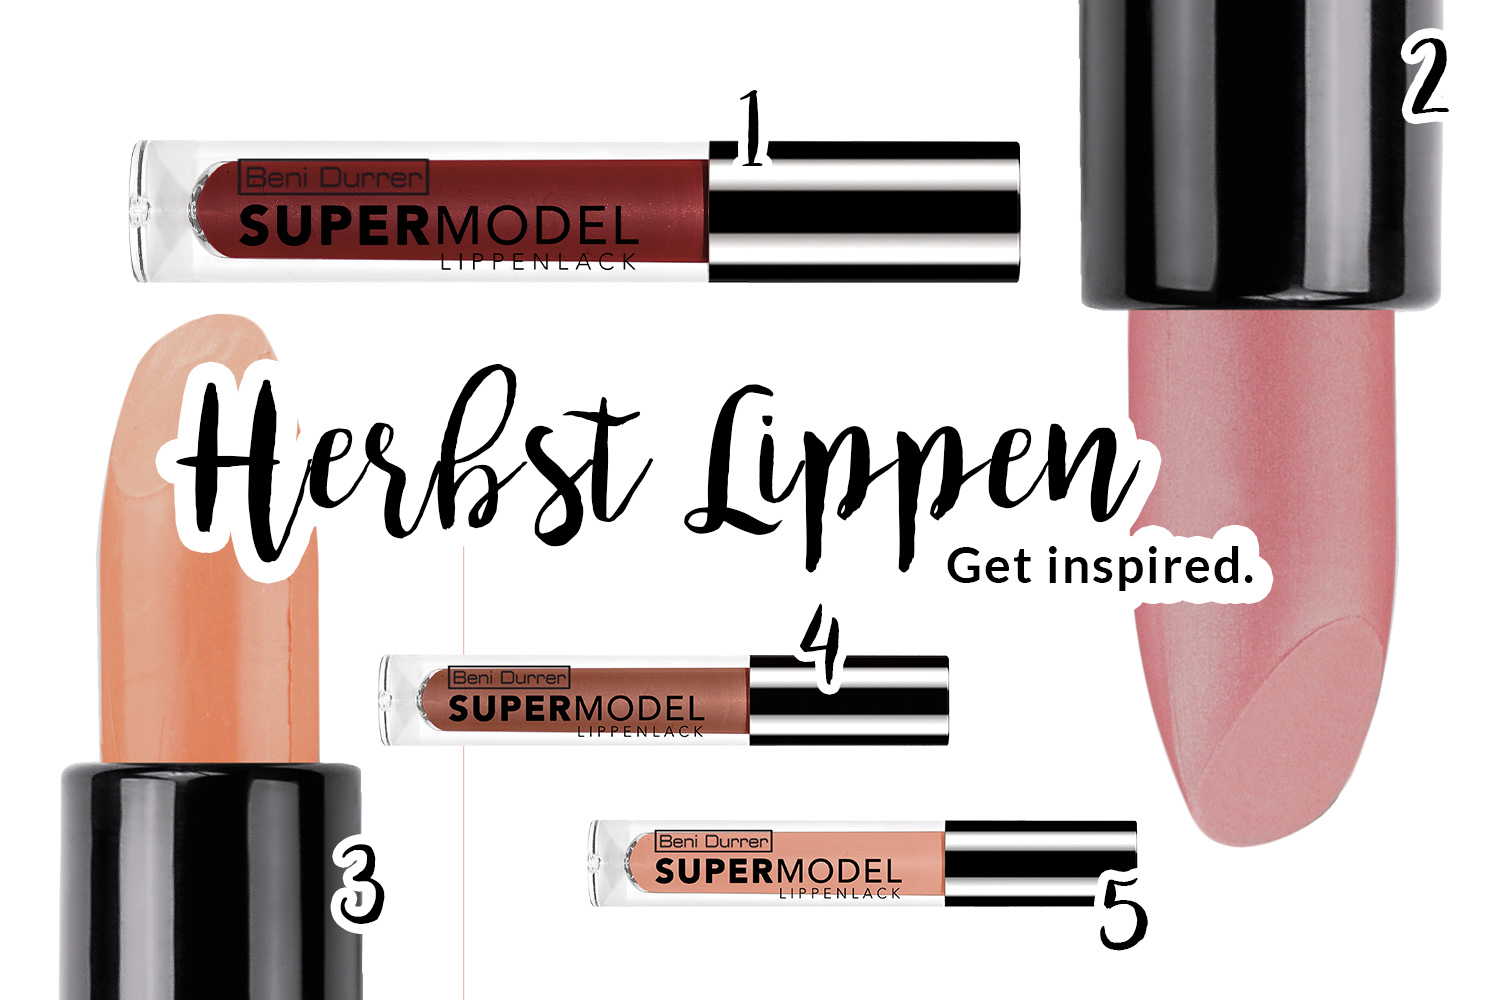 Herbst Lippen, Lippenstifte, Lippenlacke, Beauty Trends Herbst, 2016, Beni Durrer, Storm, Beauty, Makeup, Makeup Looks, Makeup Trend, Influencer, Beauty Blog, Deutschland, Berlin, Advance Your Style, advanceyourstyle